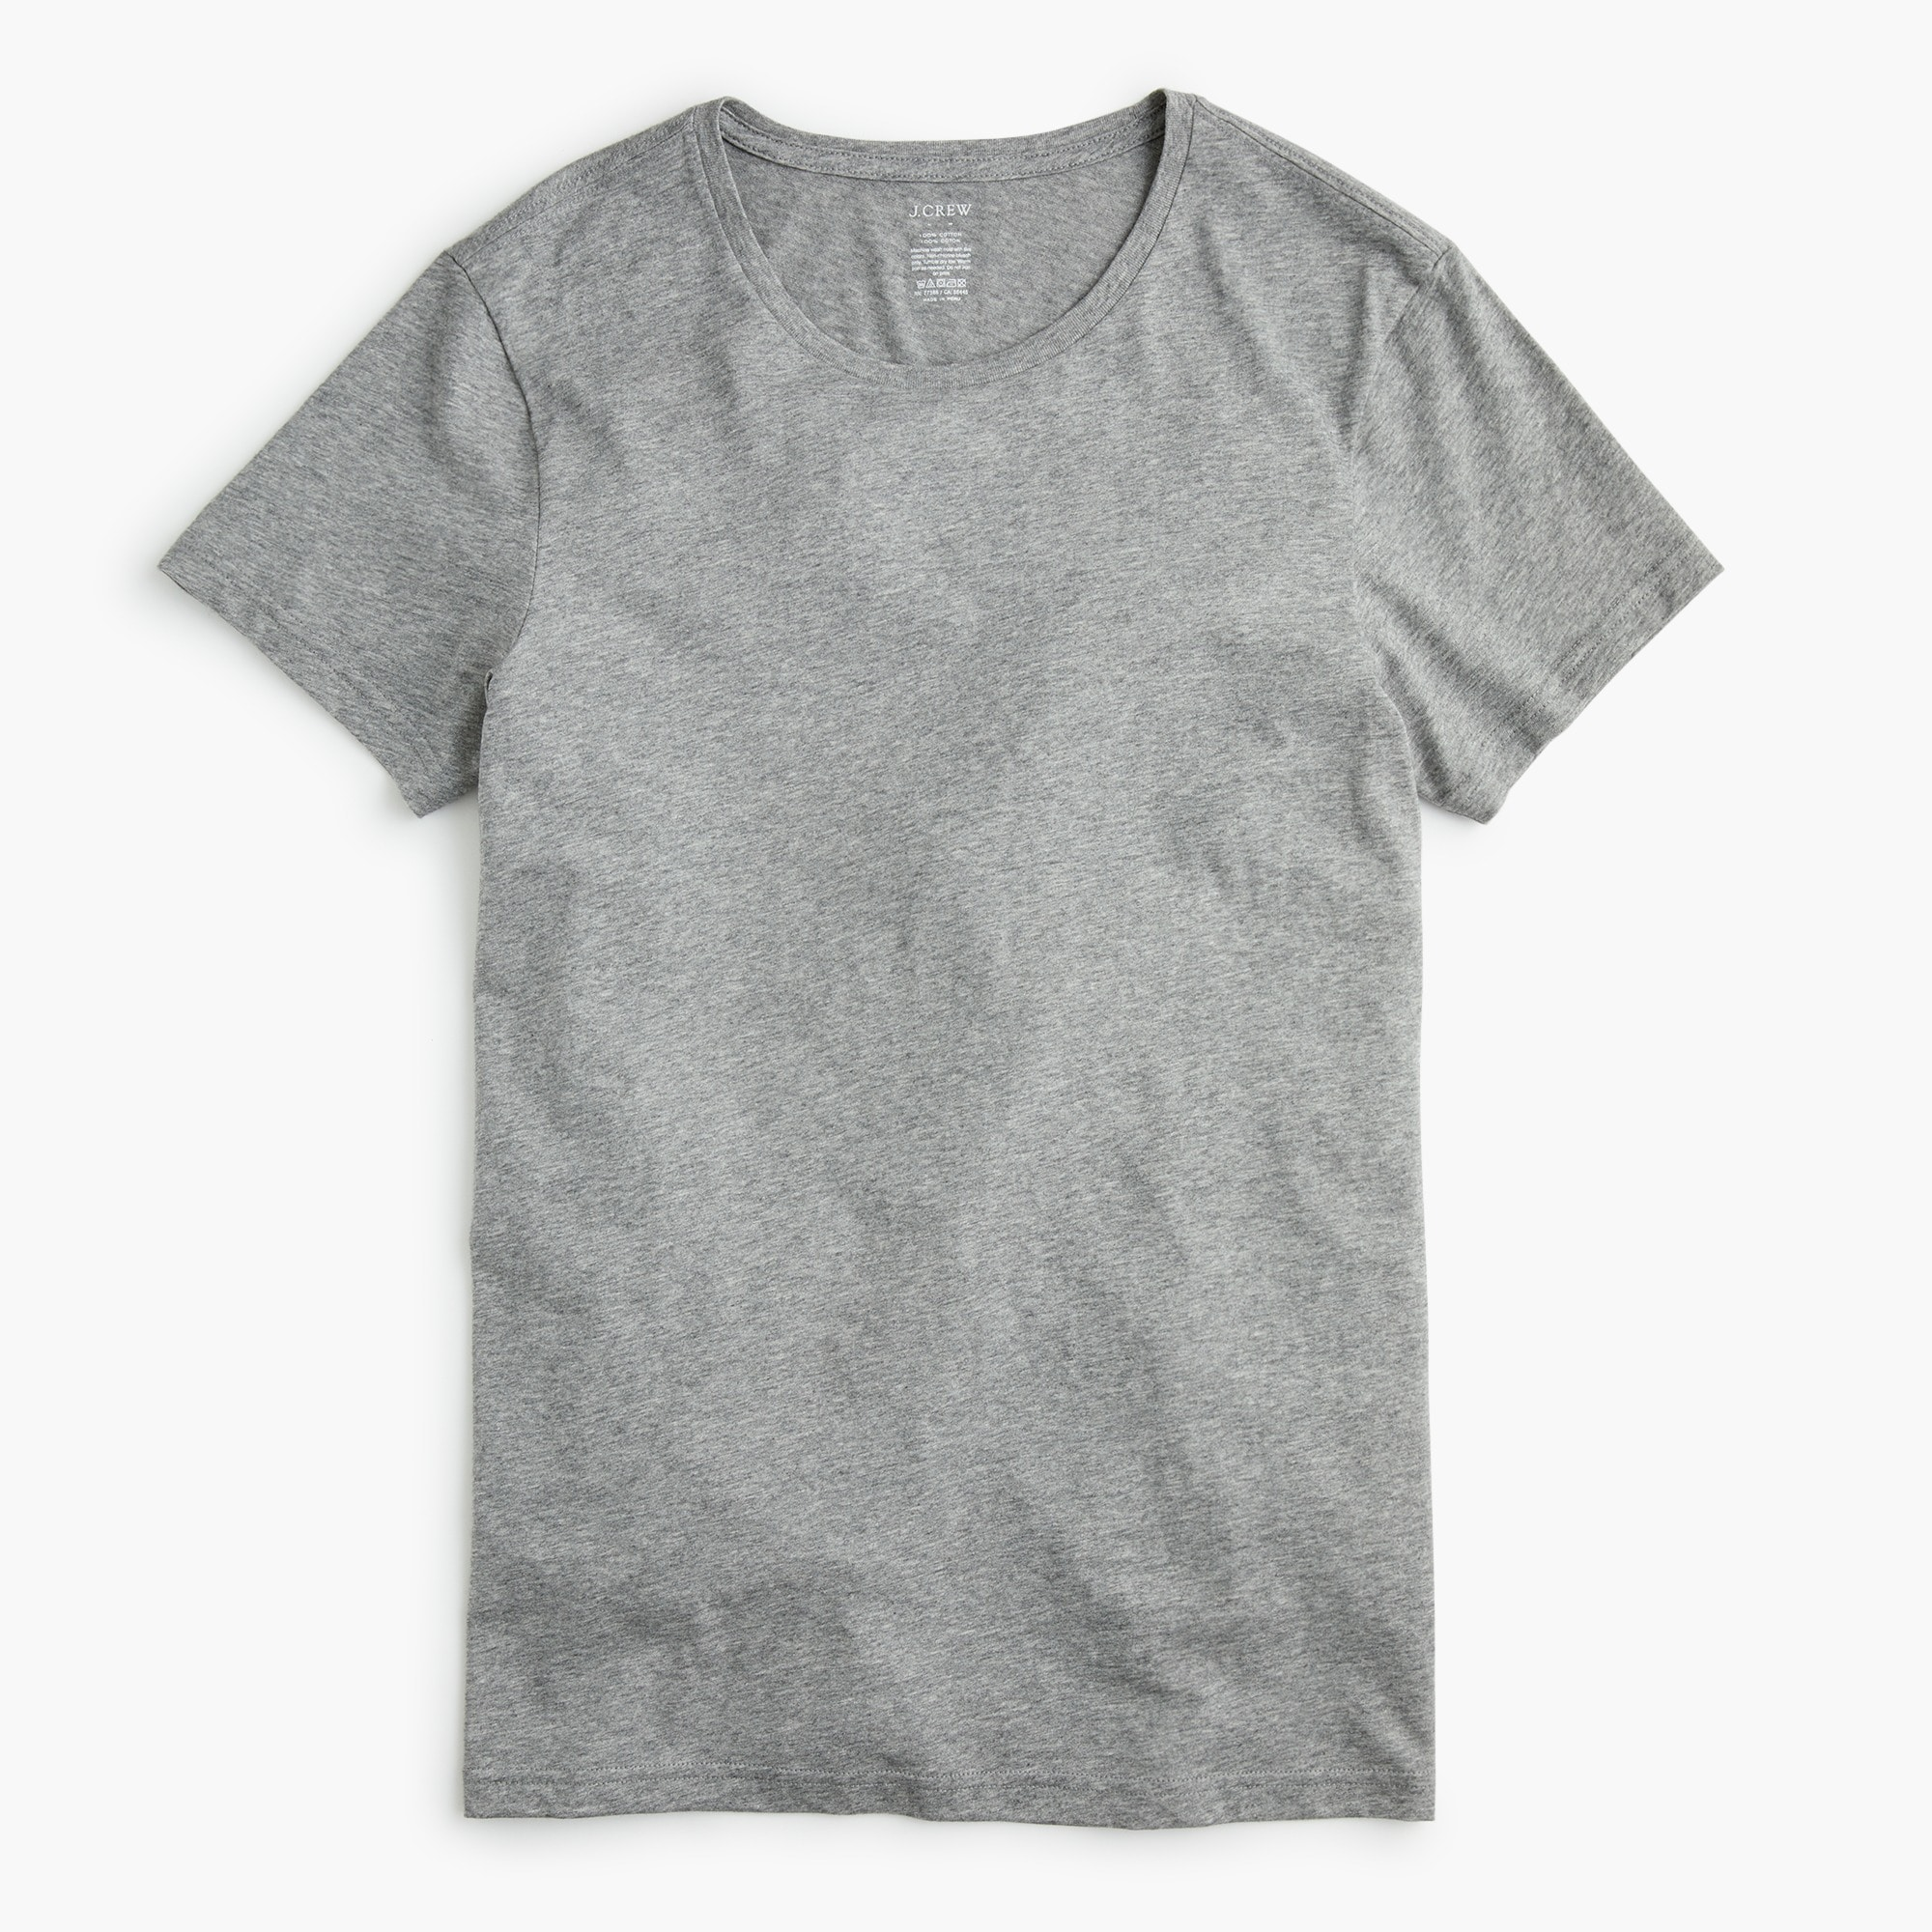 men's heather grey crewneck undershirt - men's underwear